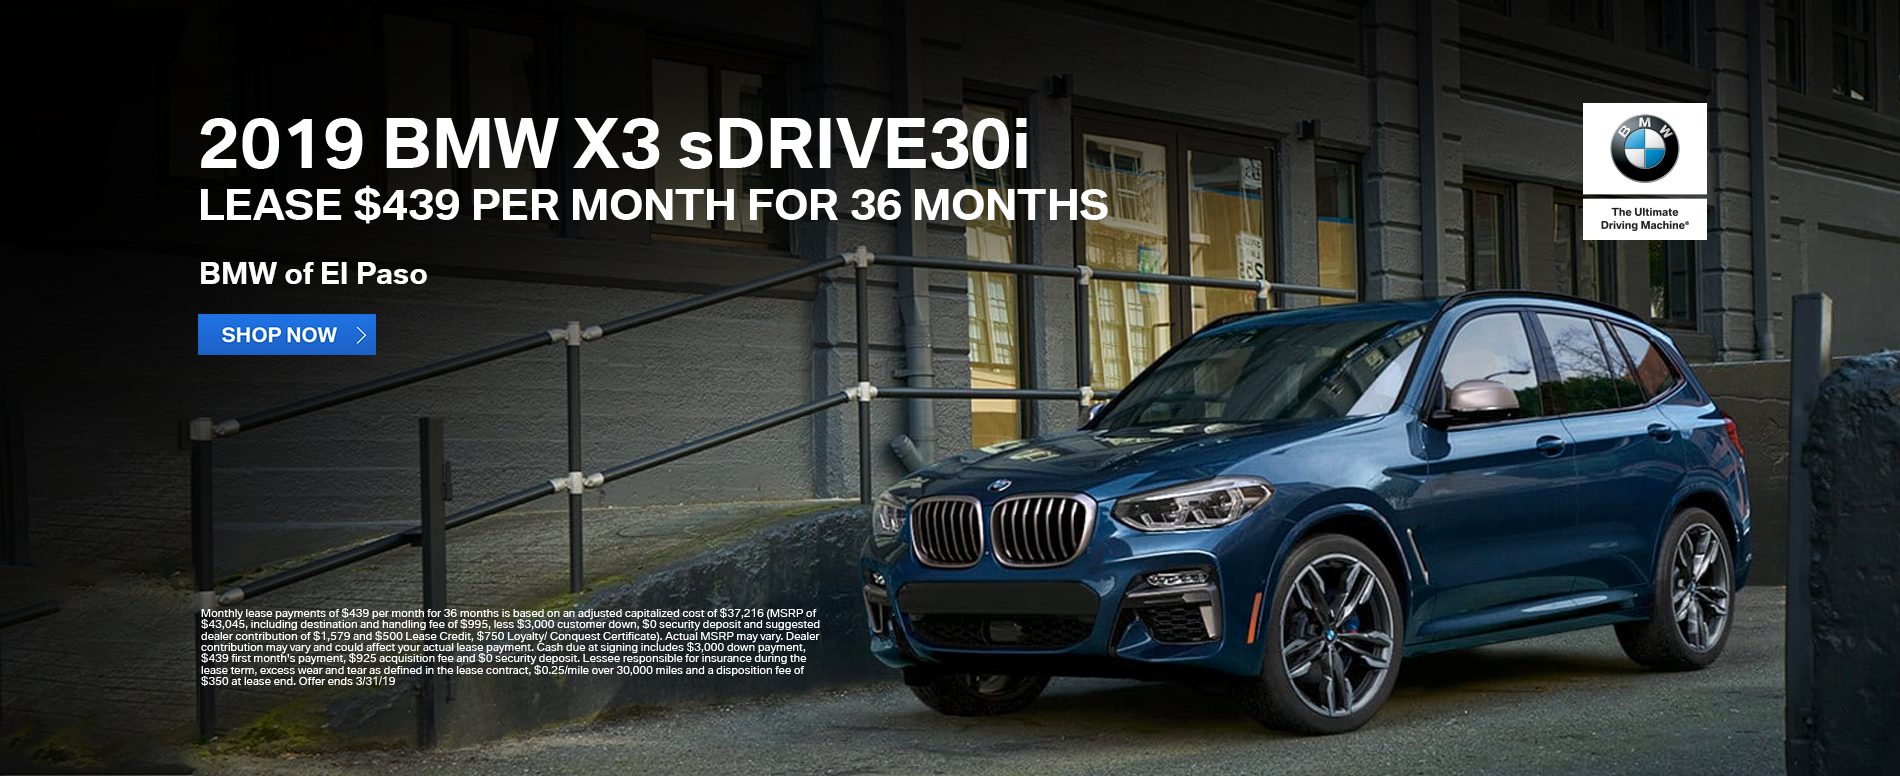 bmw of el paso tx | new & pre-owned bmw dealership near me